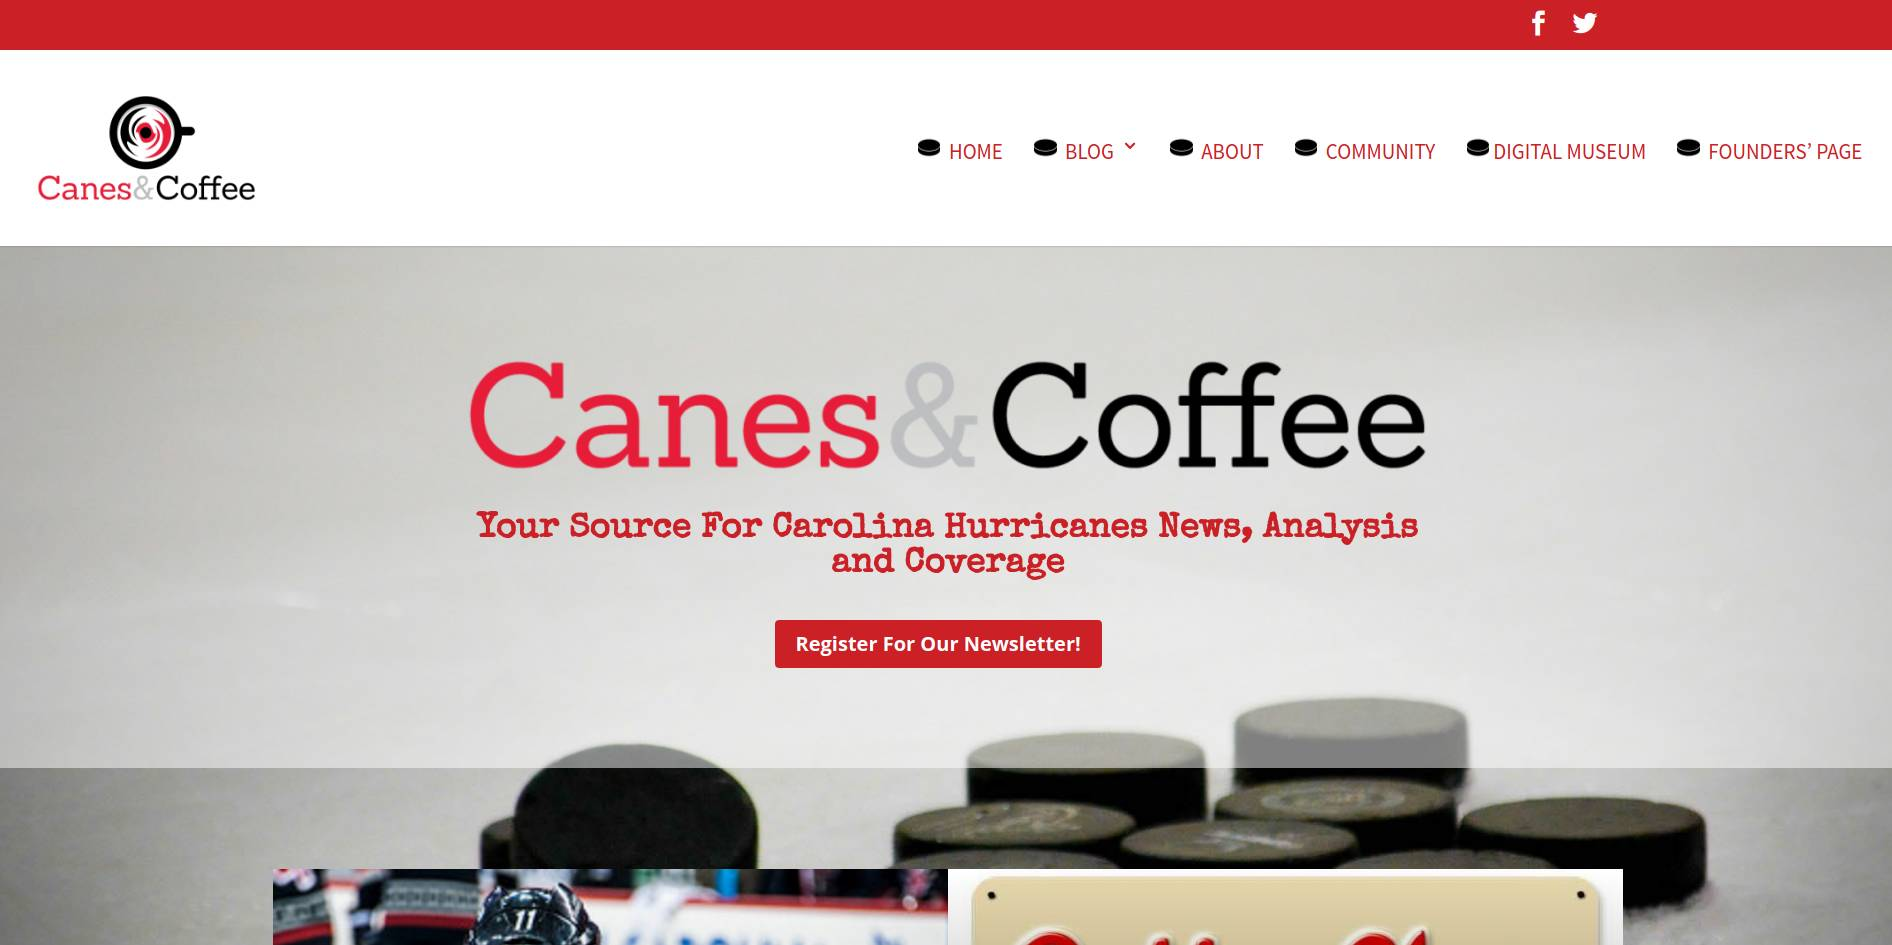 canes-and-coffee-home-raleigh-nc